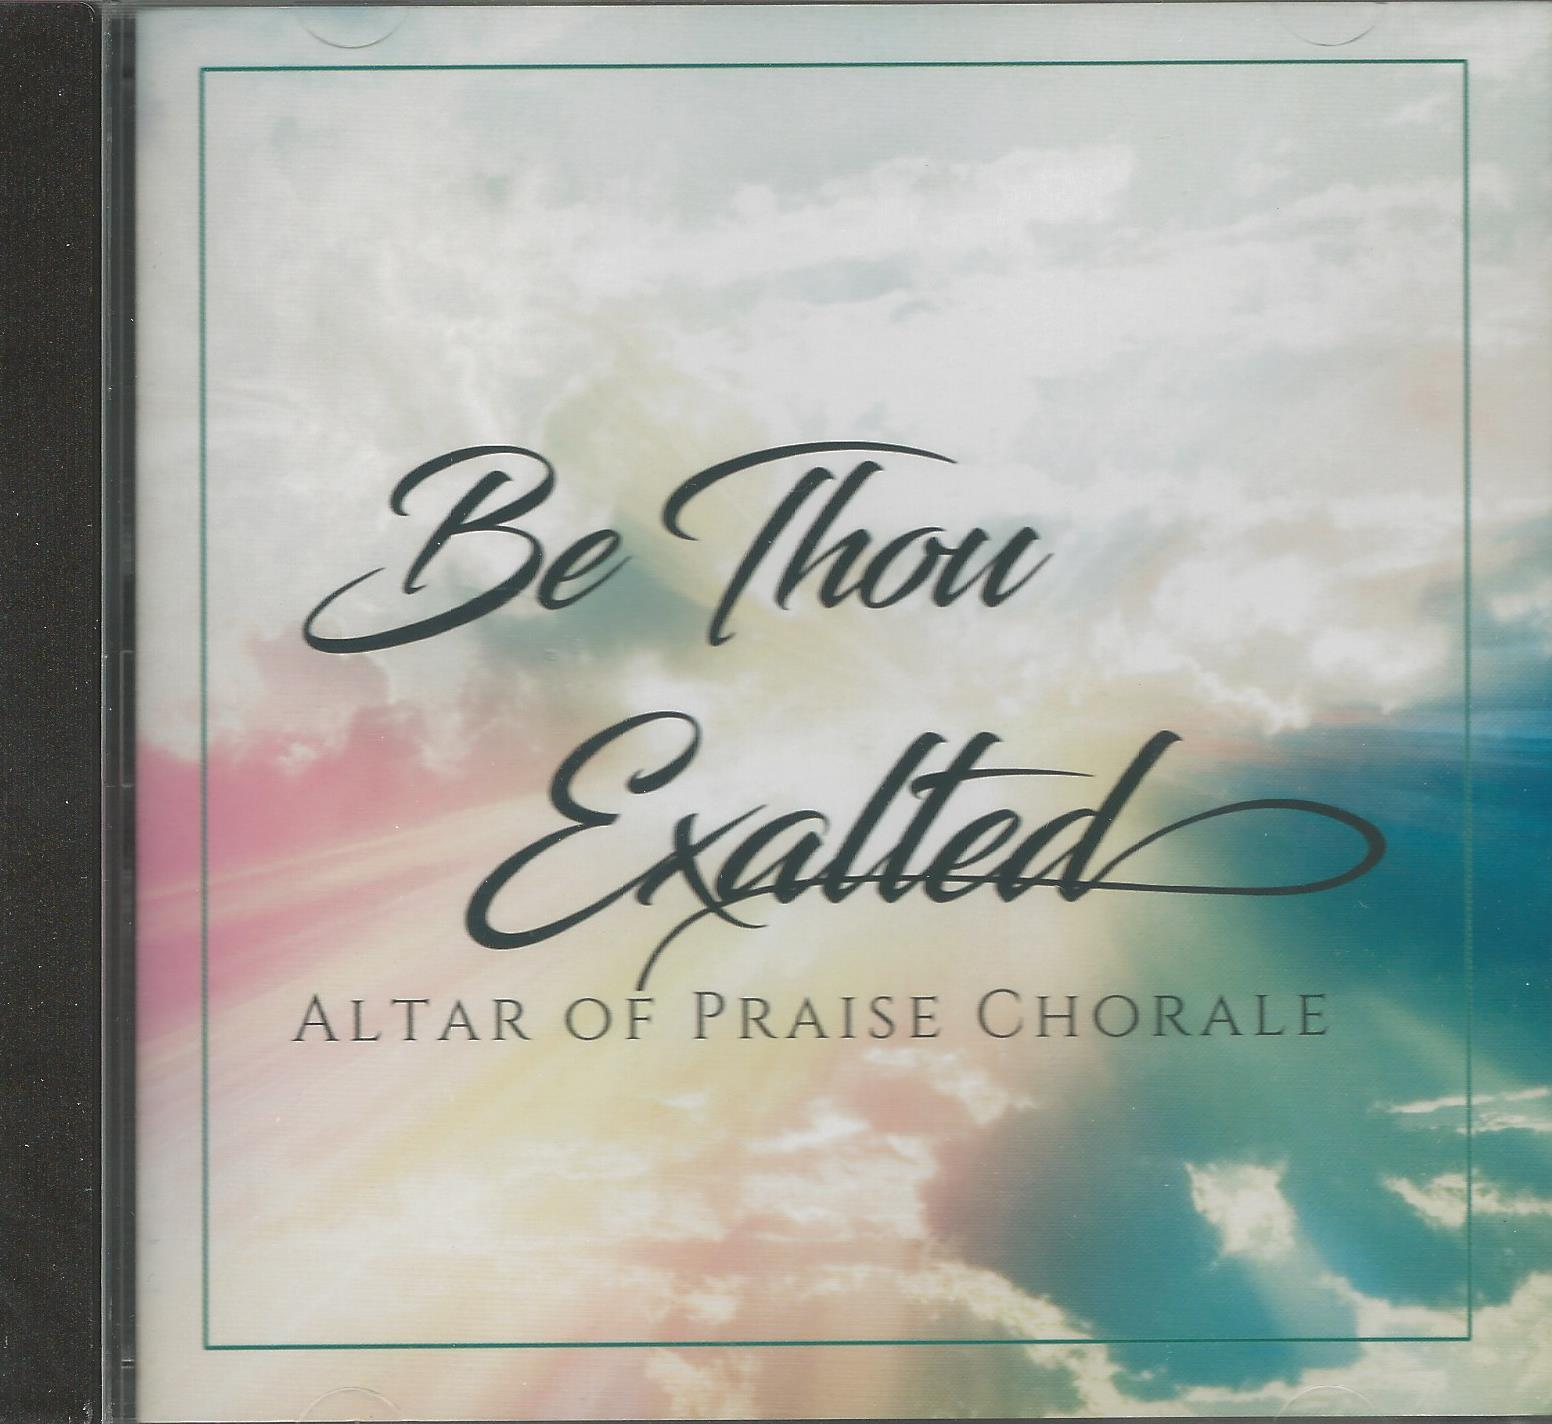 BE THOU EXALTED Altar of Praise Chorale